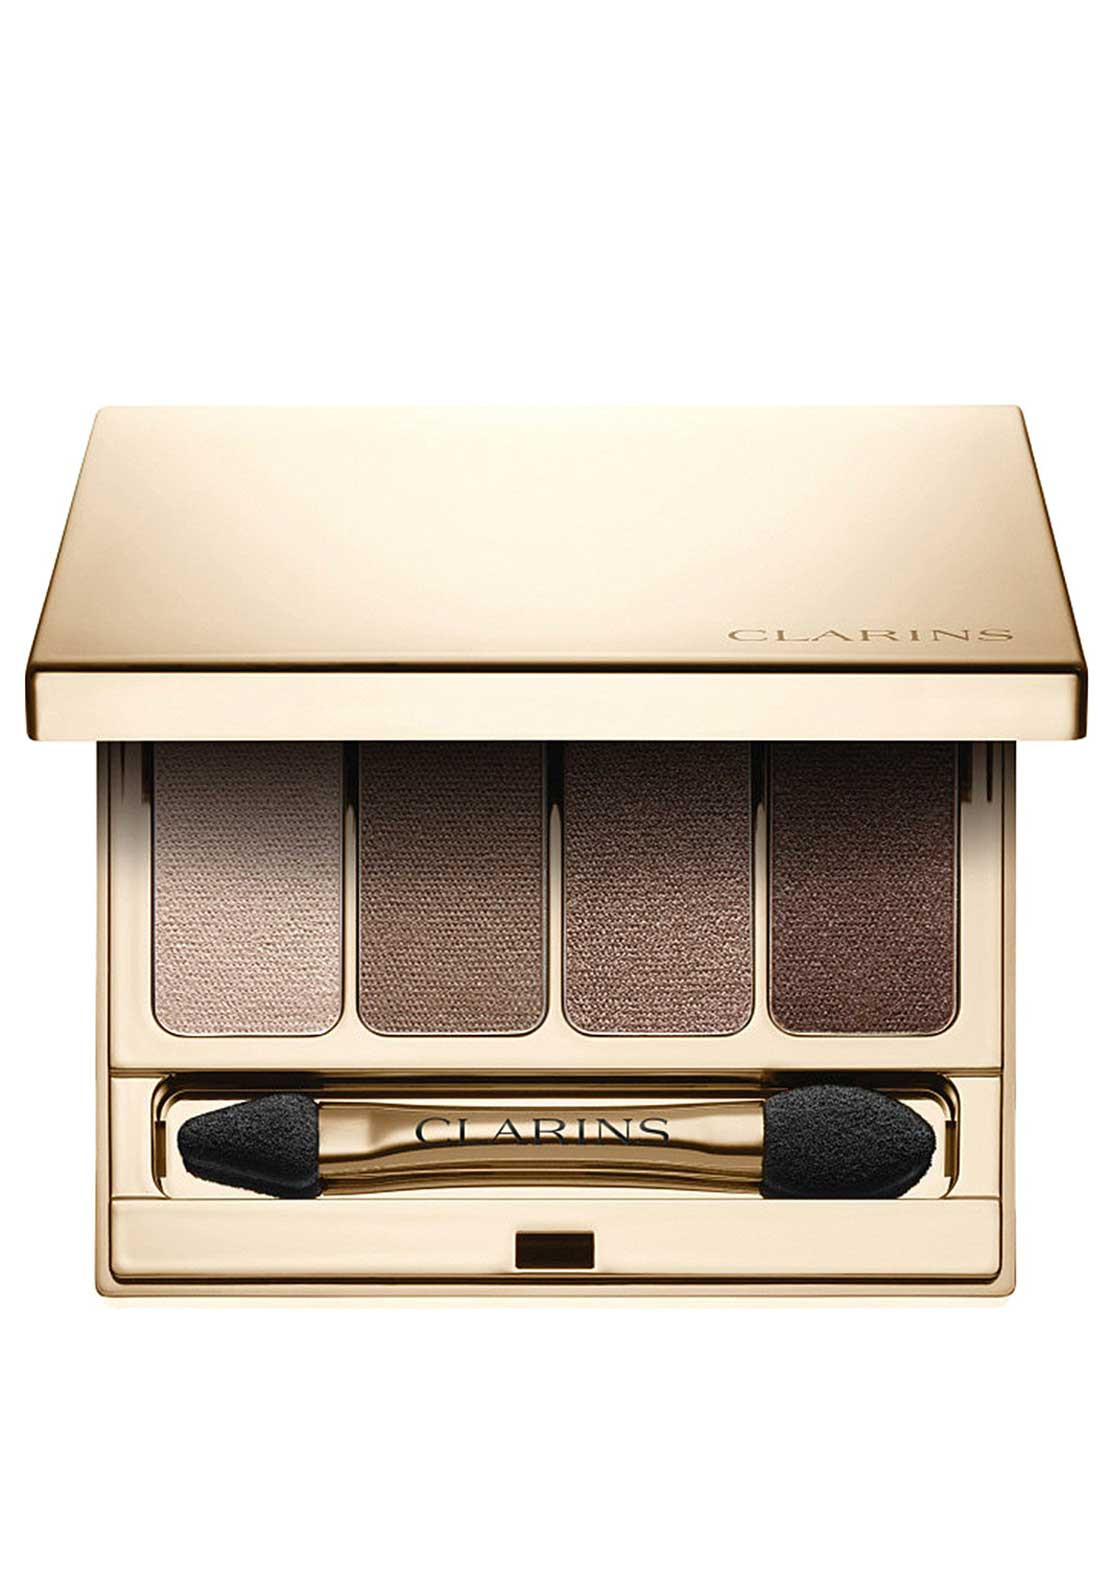 Clarins Wet & Dry Eyeshadow Palette 4 Colours, Brown 03